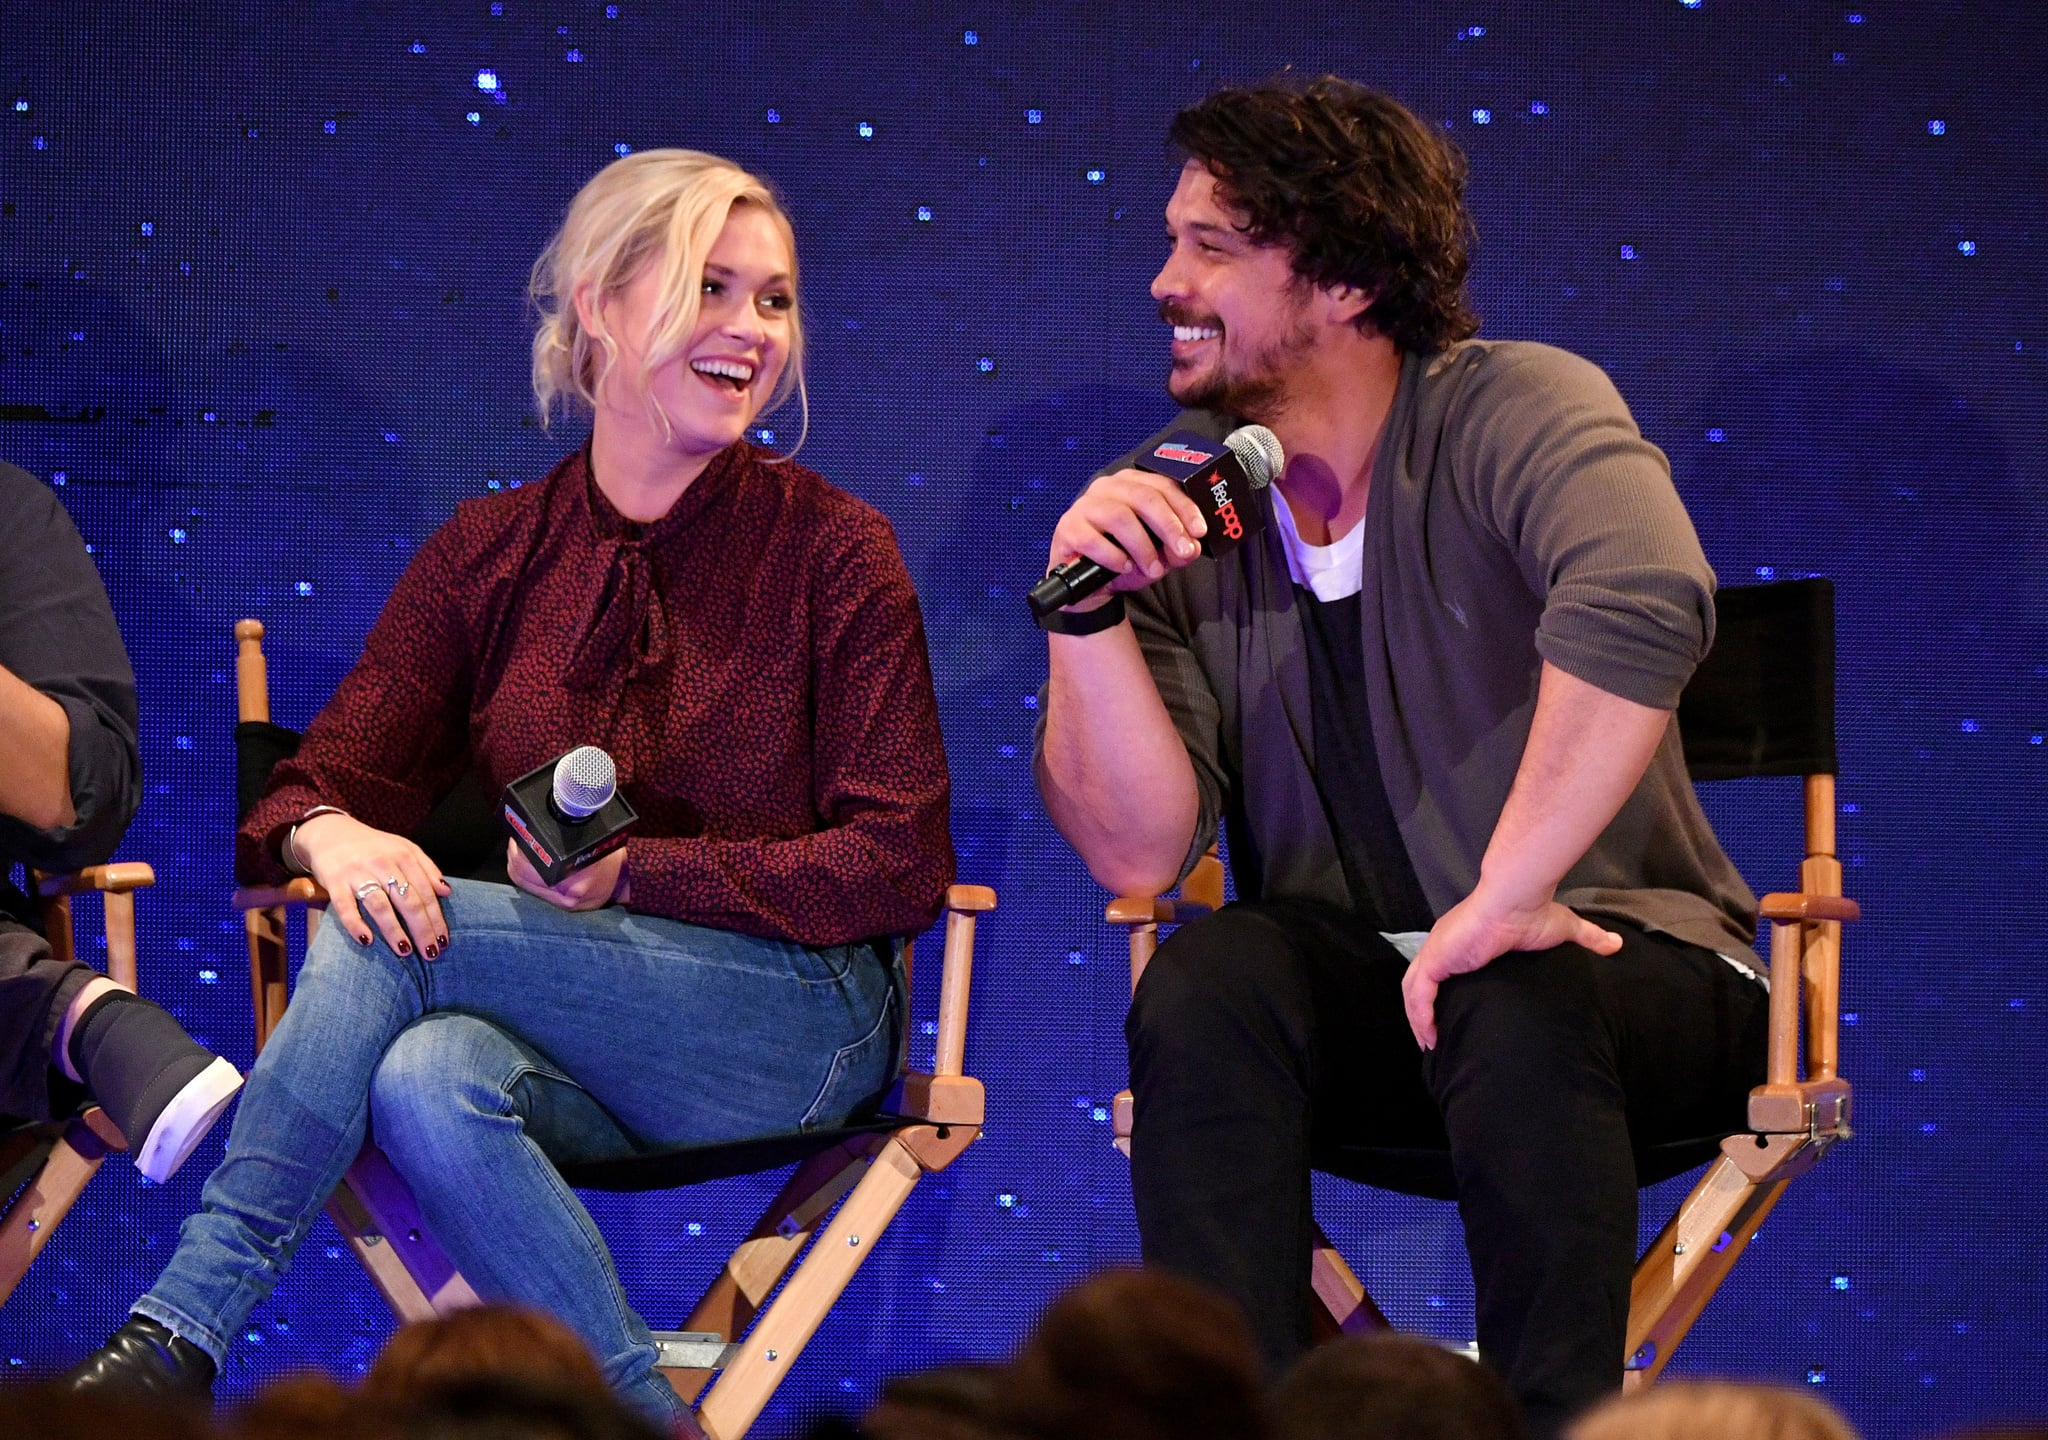 NEW YORK, NY - OCTOBER 06:  Eliza Taylor and Bob Morley speak onstage at the WBTV Panel Block: The 100 panel during New York Comic Con at Jacob Javits Centre on October 6, 2018 in New York City.  (Photo by Dia Dipasupil/Getty Images for New York Comic Con)